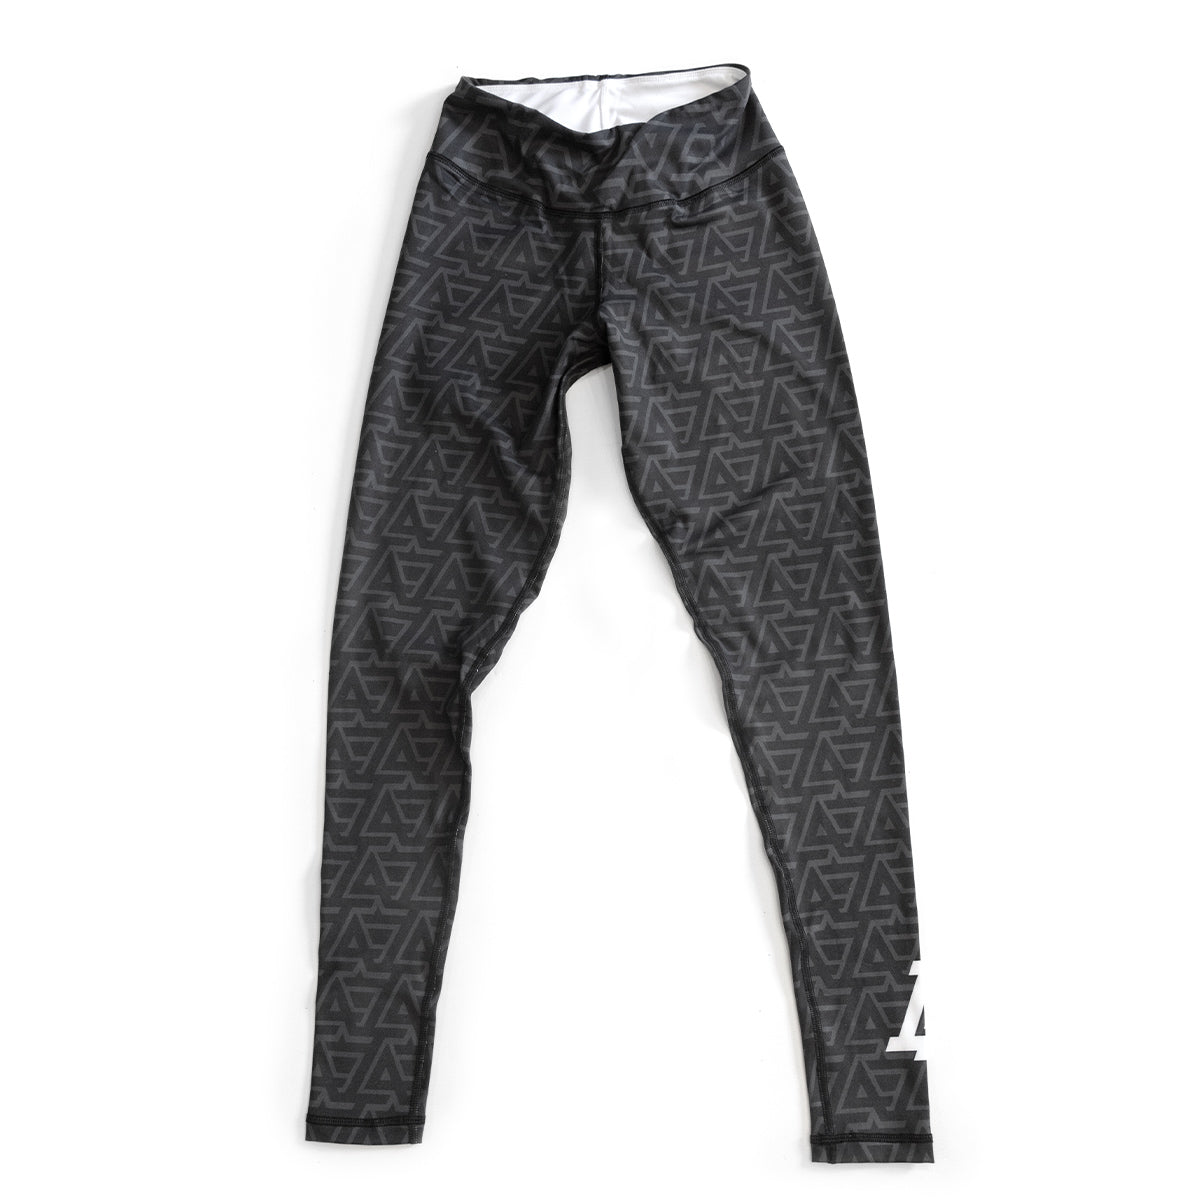 Lost Art Canada - black and grey leggings LA design front view